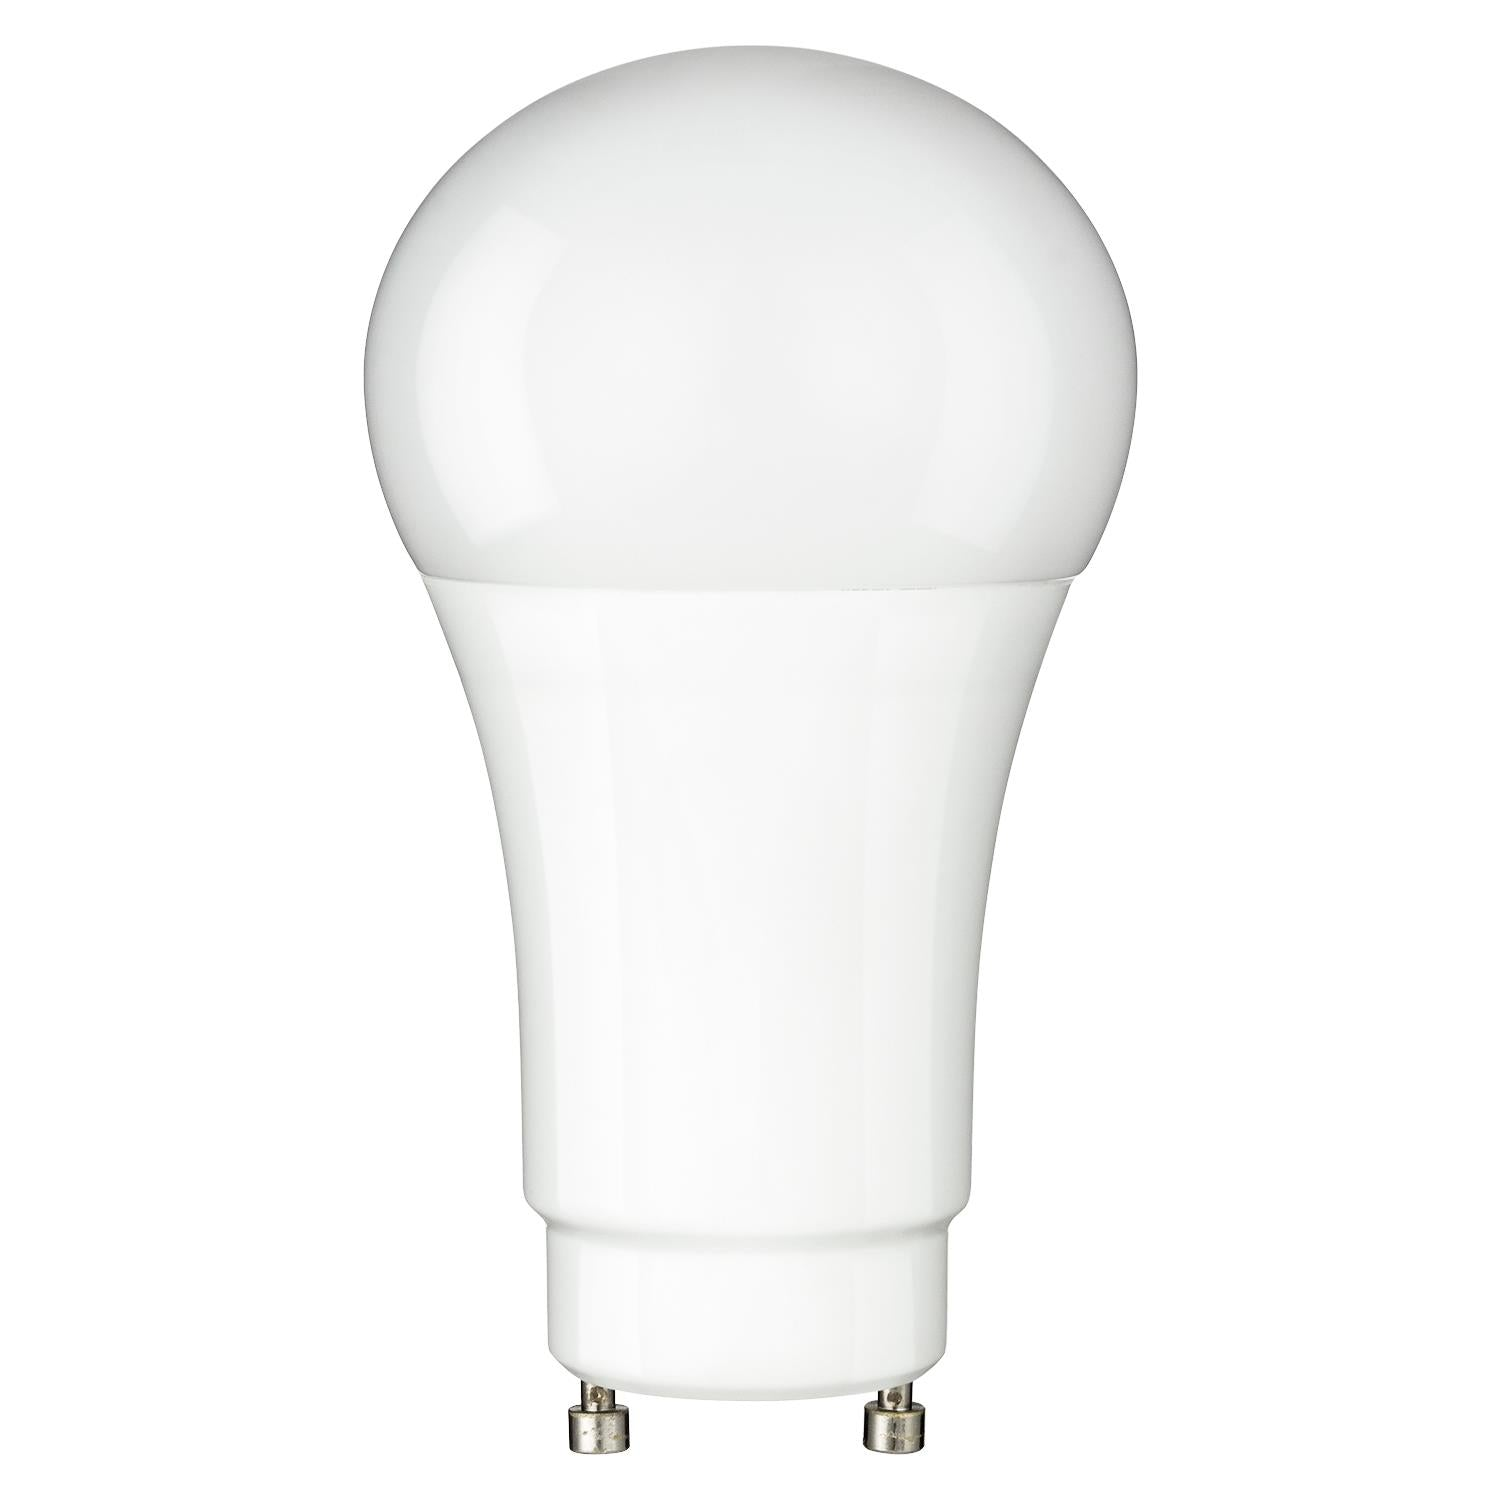 SUNLITE 88345-SU LED 10w Frosted A19 Light Bulbs 4000K Cool White 4000K